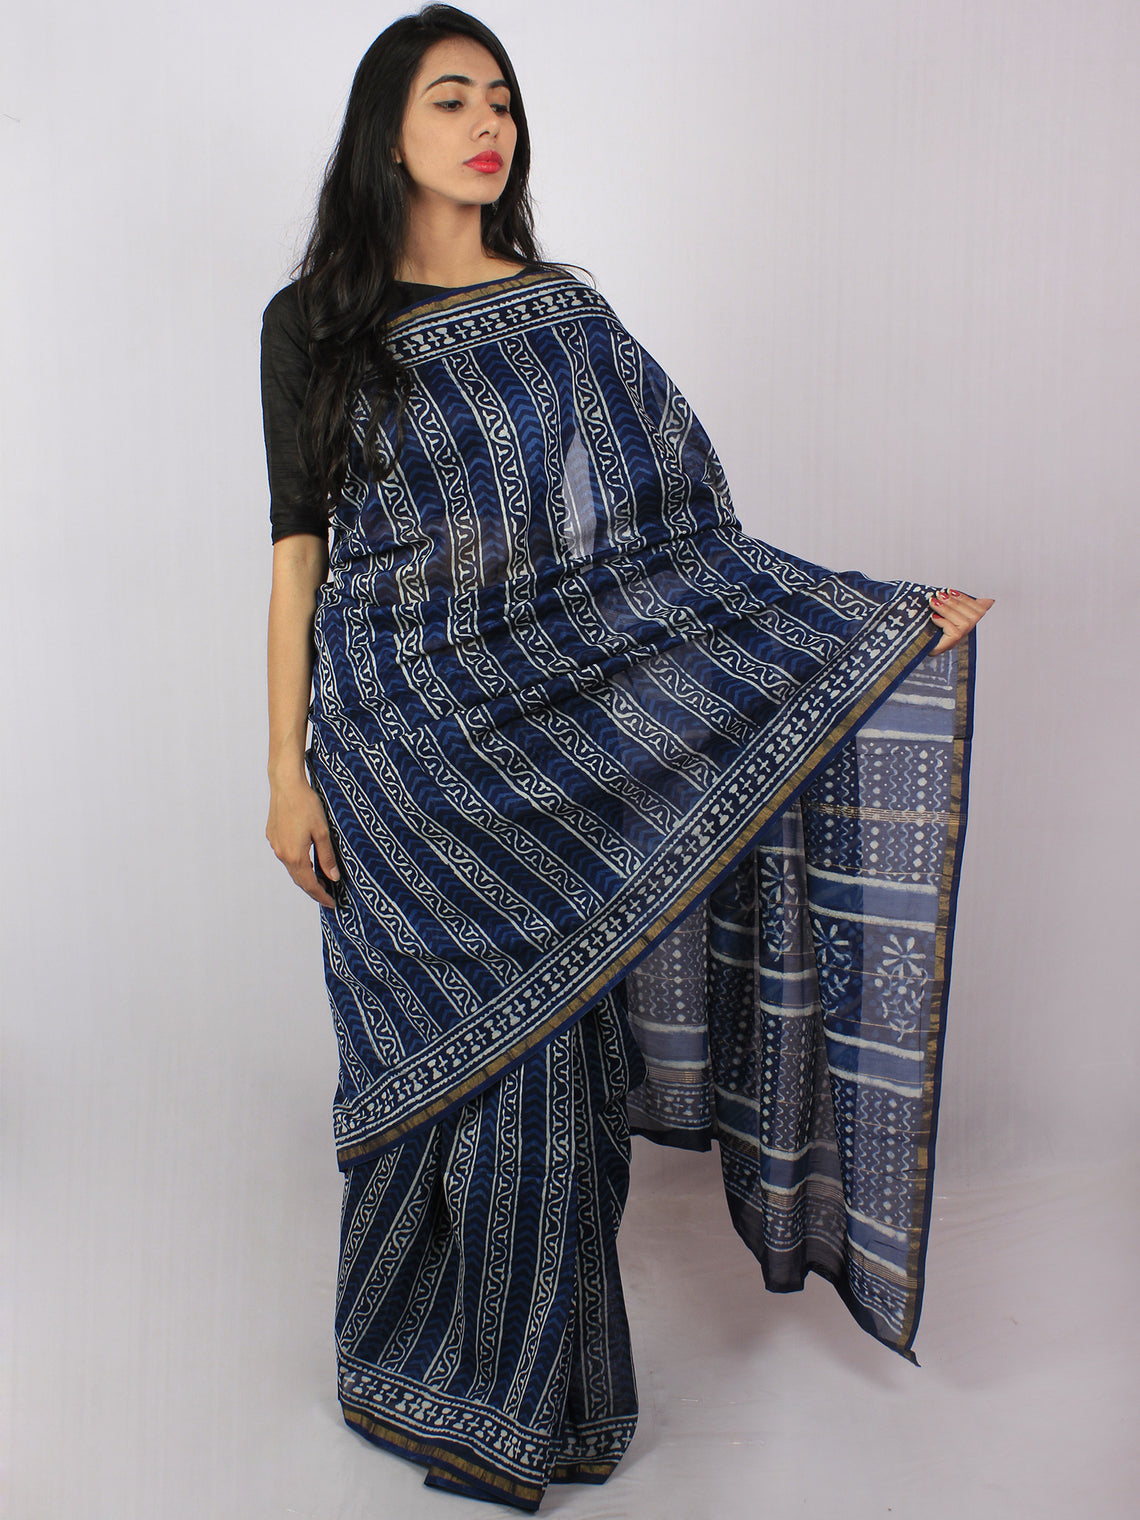 Indigo Ivory Blue Hand Block Printed in Natural Colors Chanderi Saree - S03170771